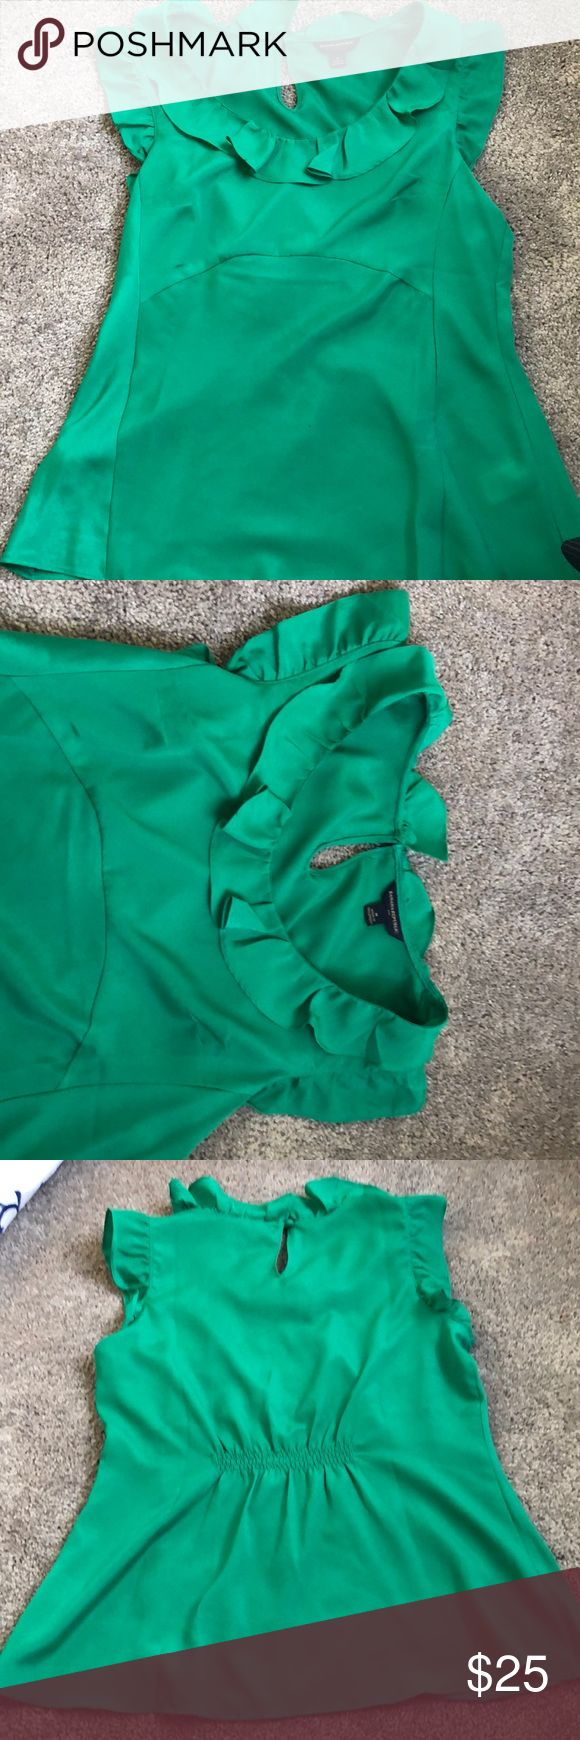 Banana Republic Green flutter sleeve top M Super flattering seems on front. Middle is flowy, with ruffled sleeves and neckline. Perfect for work, or can be dressed with for a fun night out. Deep emerald green color. Banana Republic Tops Blouses